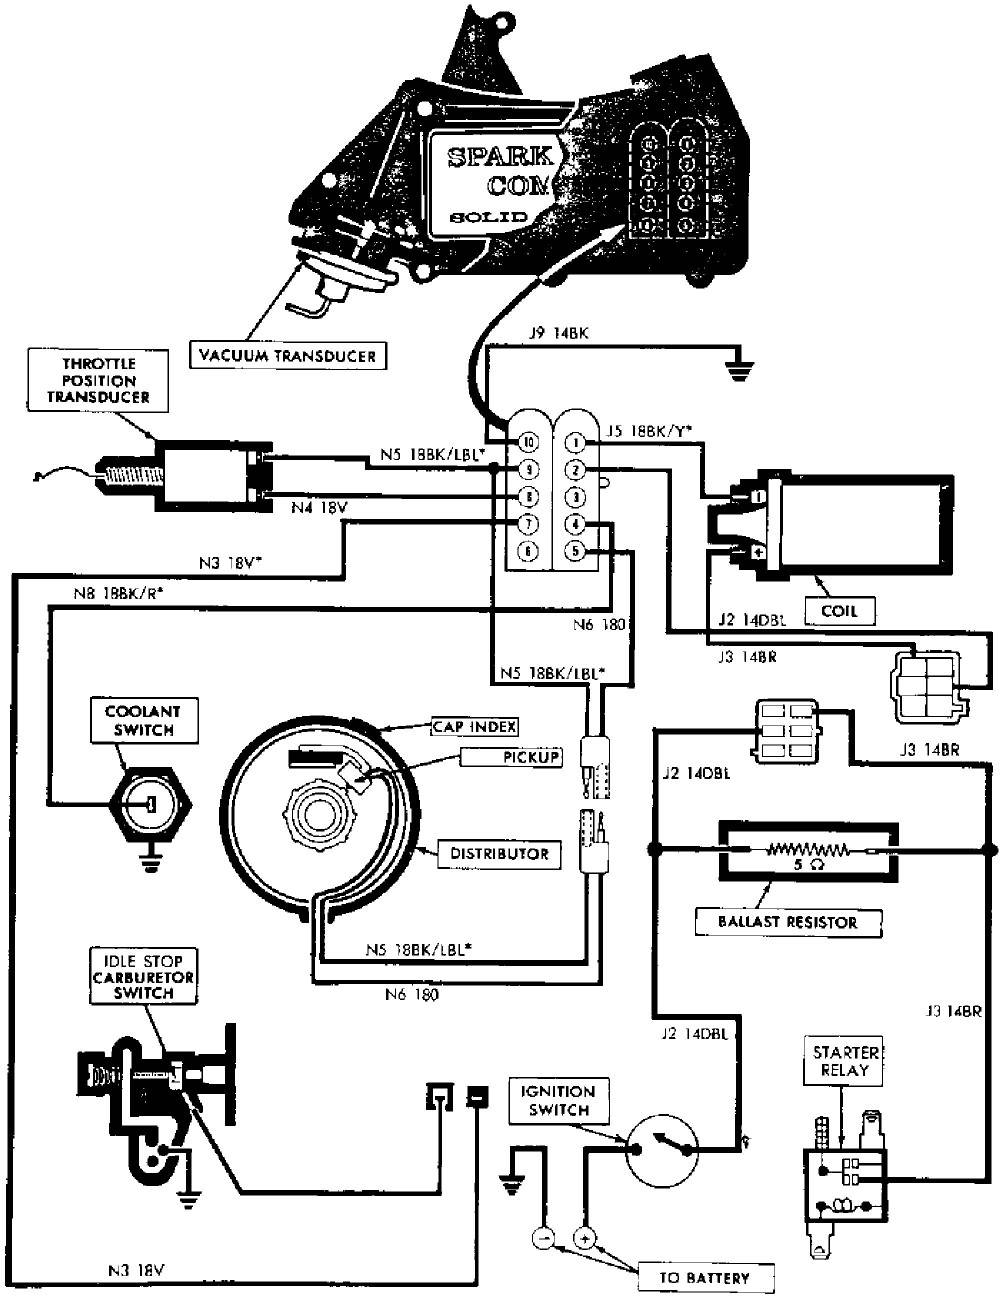 Diagram of cj7 wiring harness diagram millions ideas diagram and